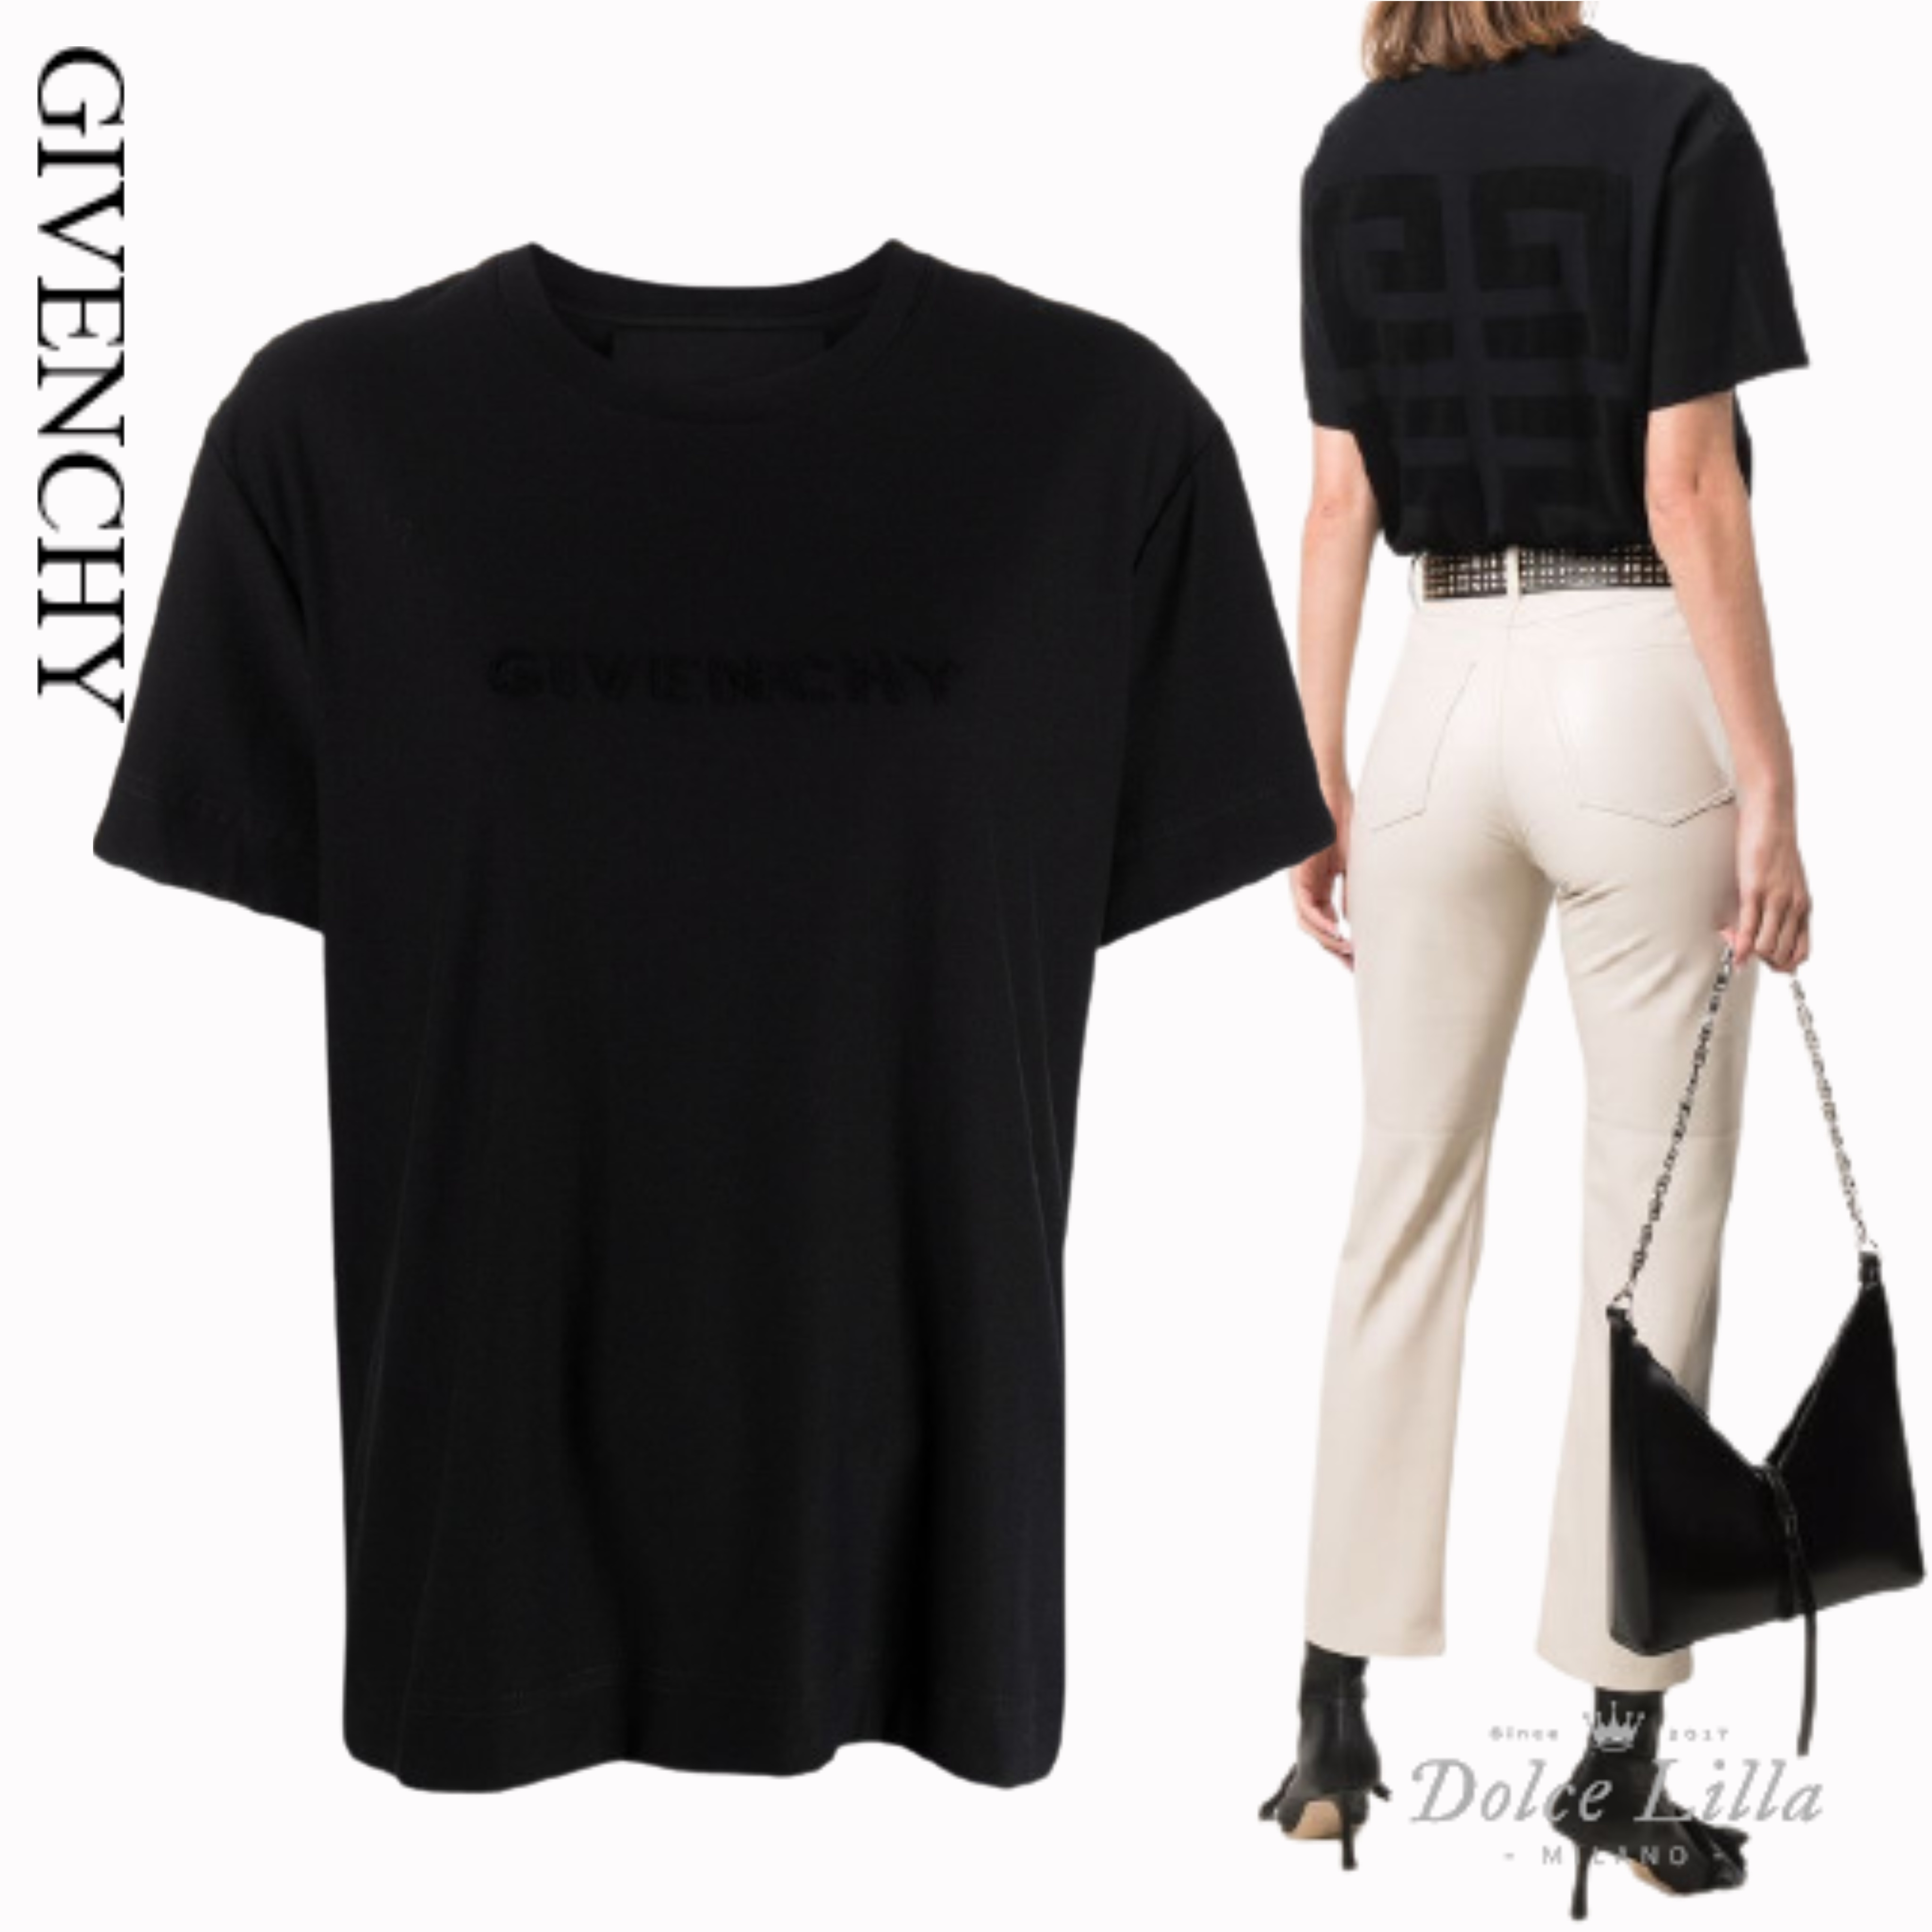 GIVENCHY GIVENCHY 4G Tシャツ (GIVENCHY/Tシャツ・カットソー) BW707Z30NH  BW707Z30NH 001  BW707Z30NH001